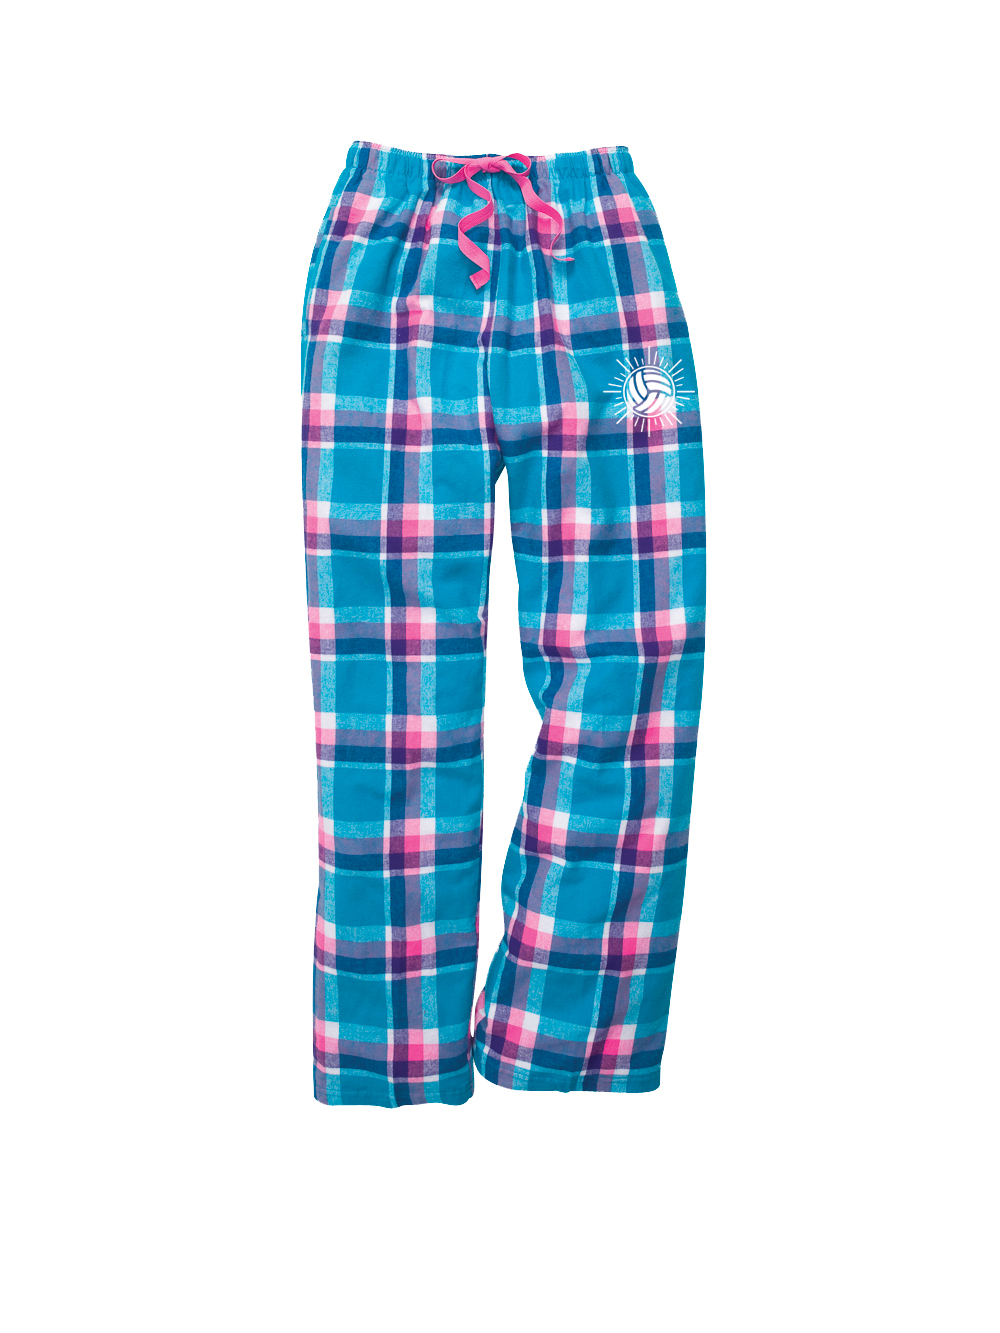 Plaid Pants Midwest Volleyball Warehouse